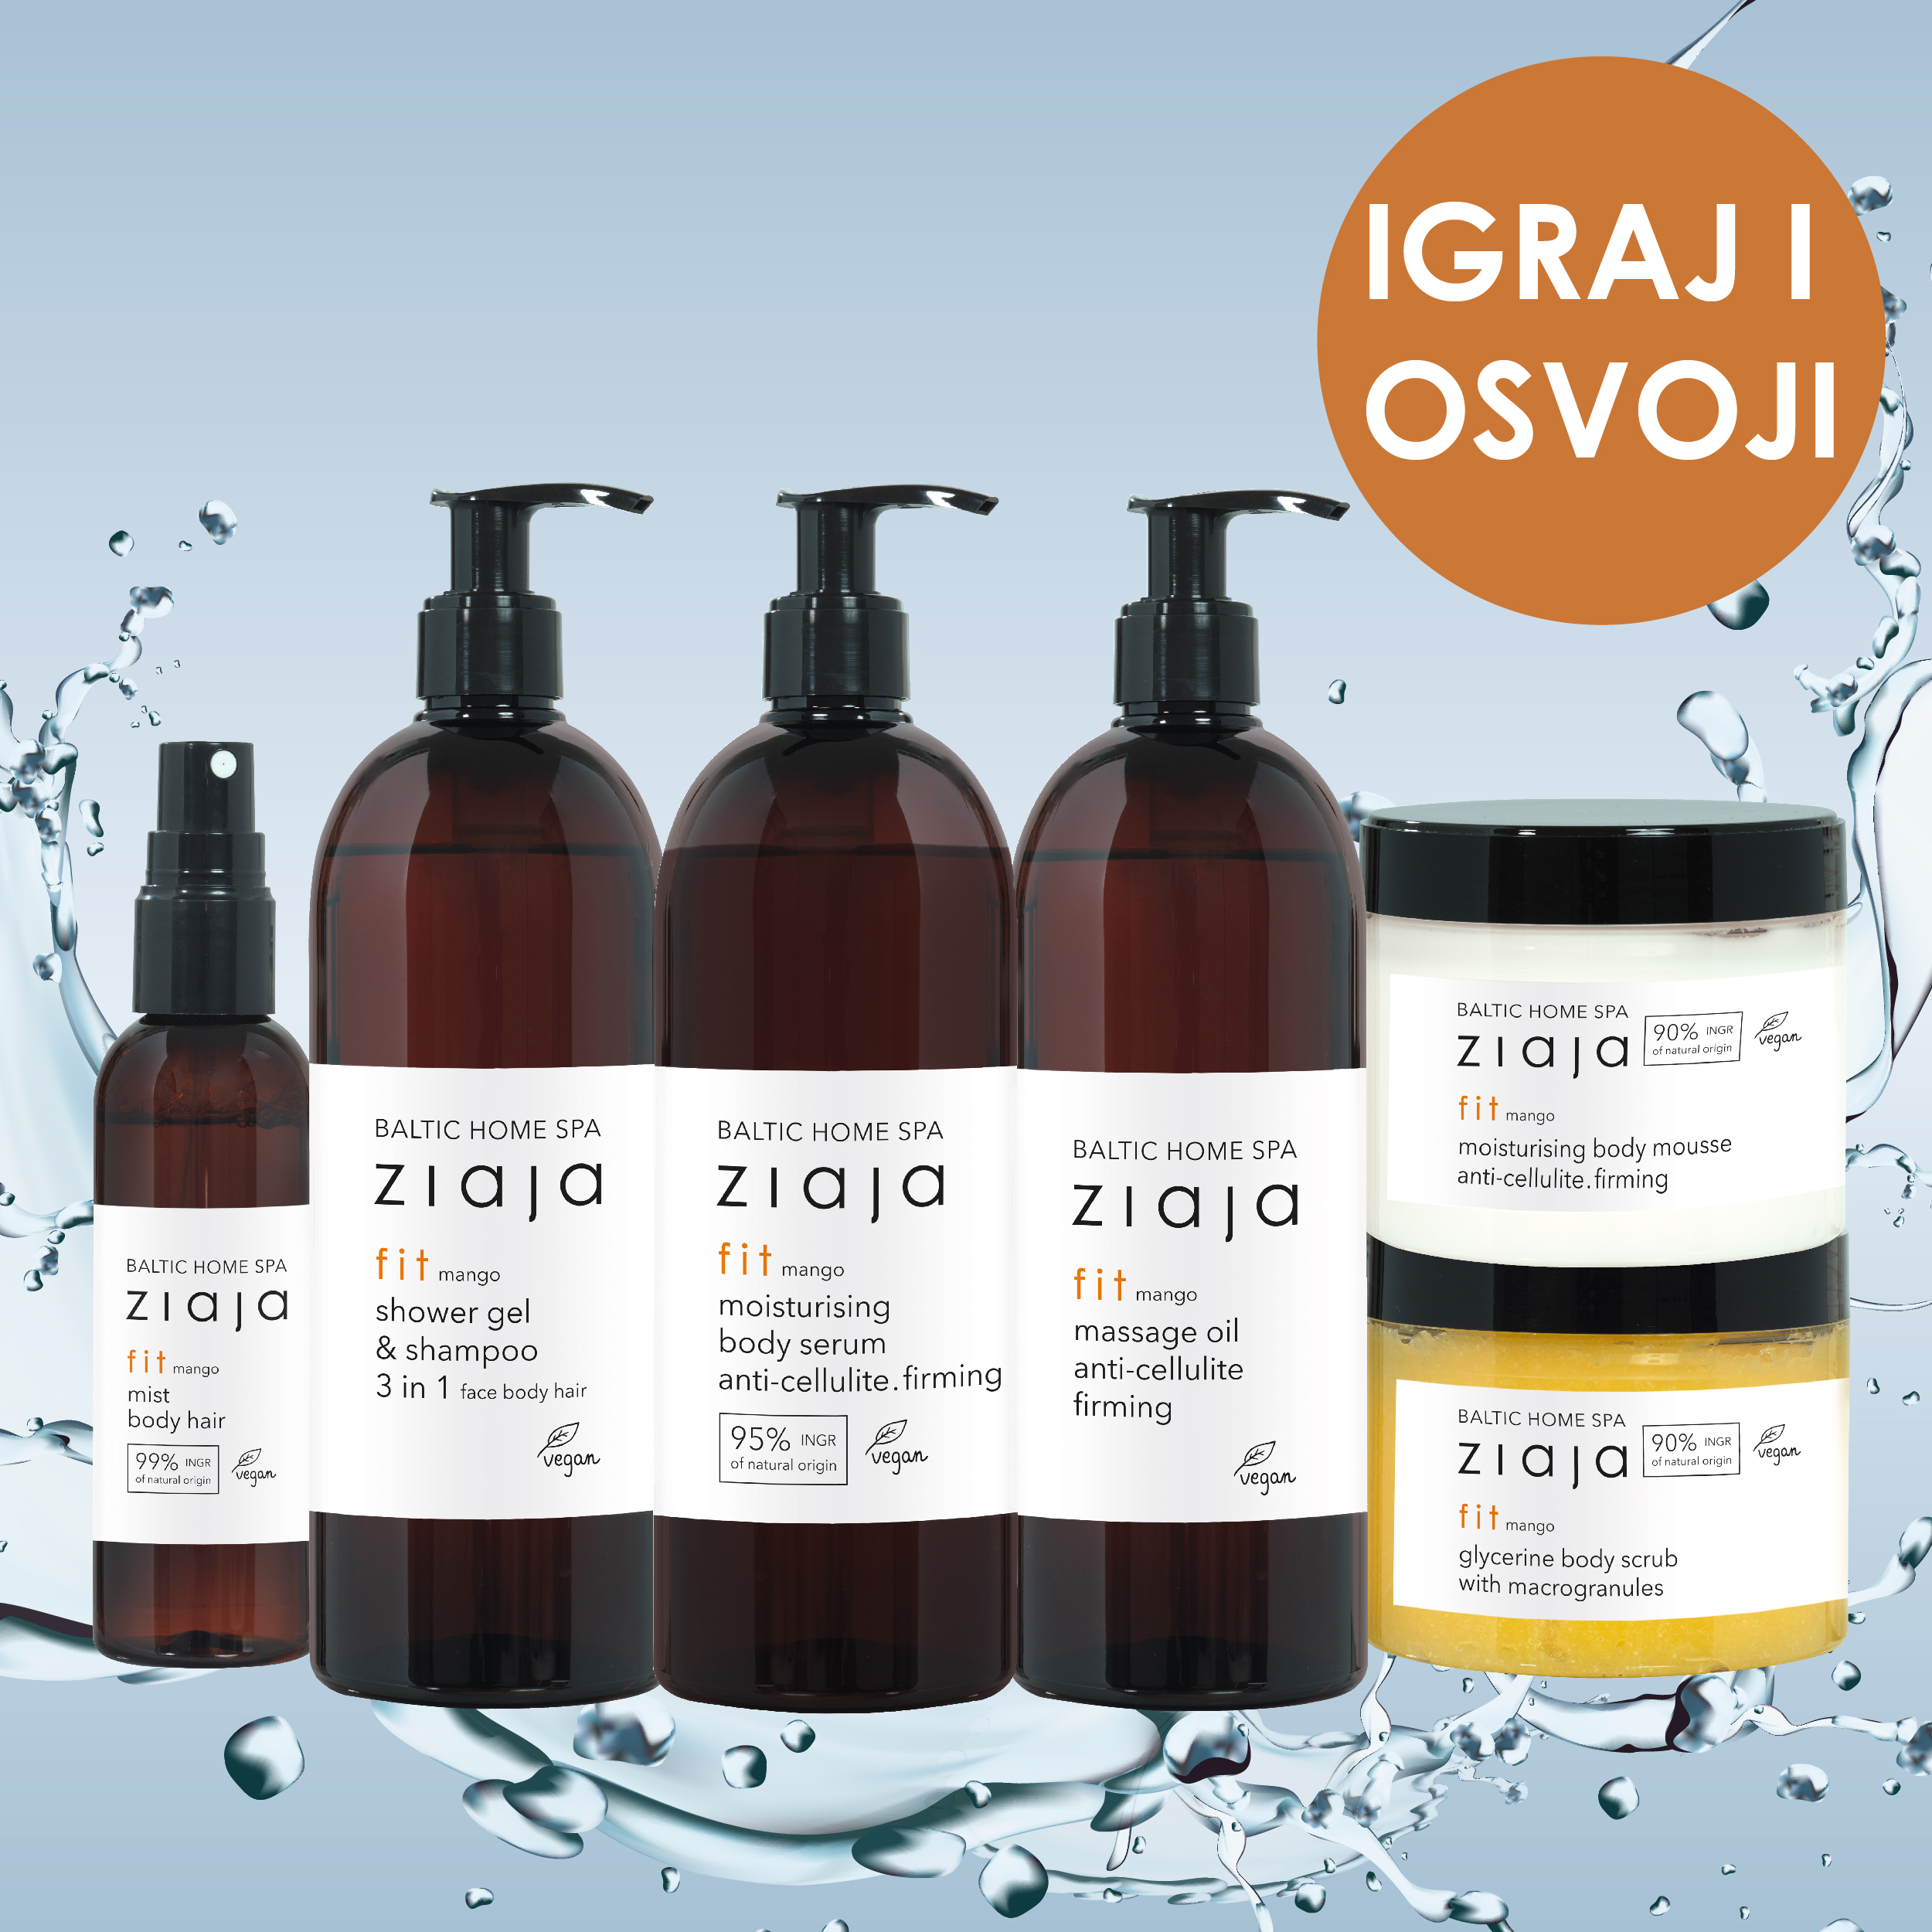 Ziaja Baltic home spa fit giveaway